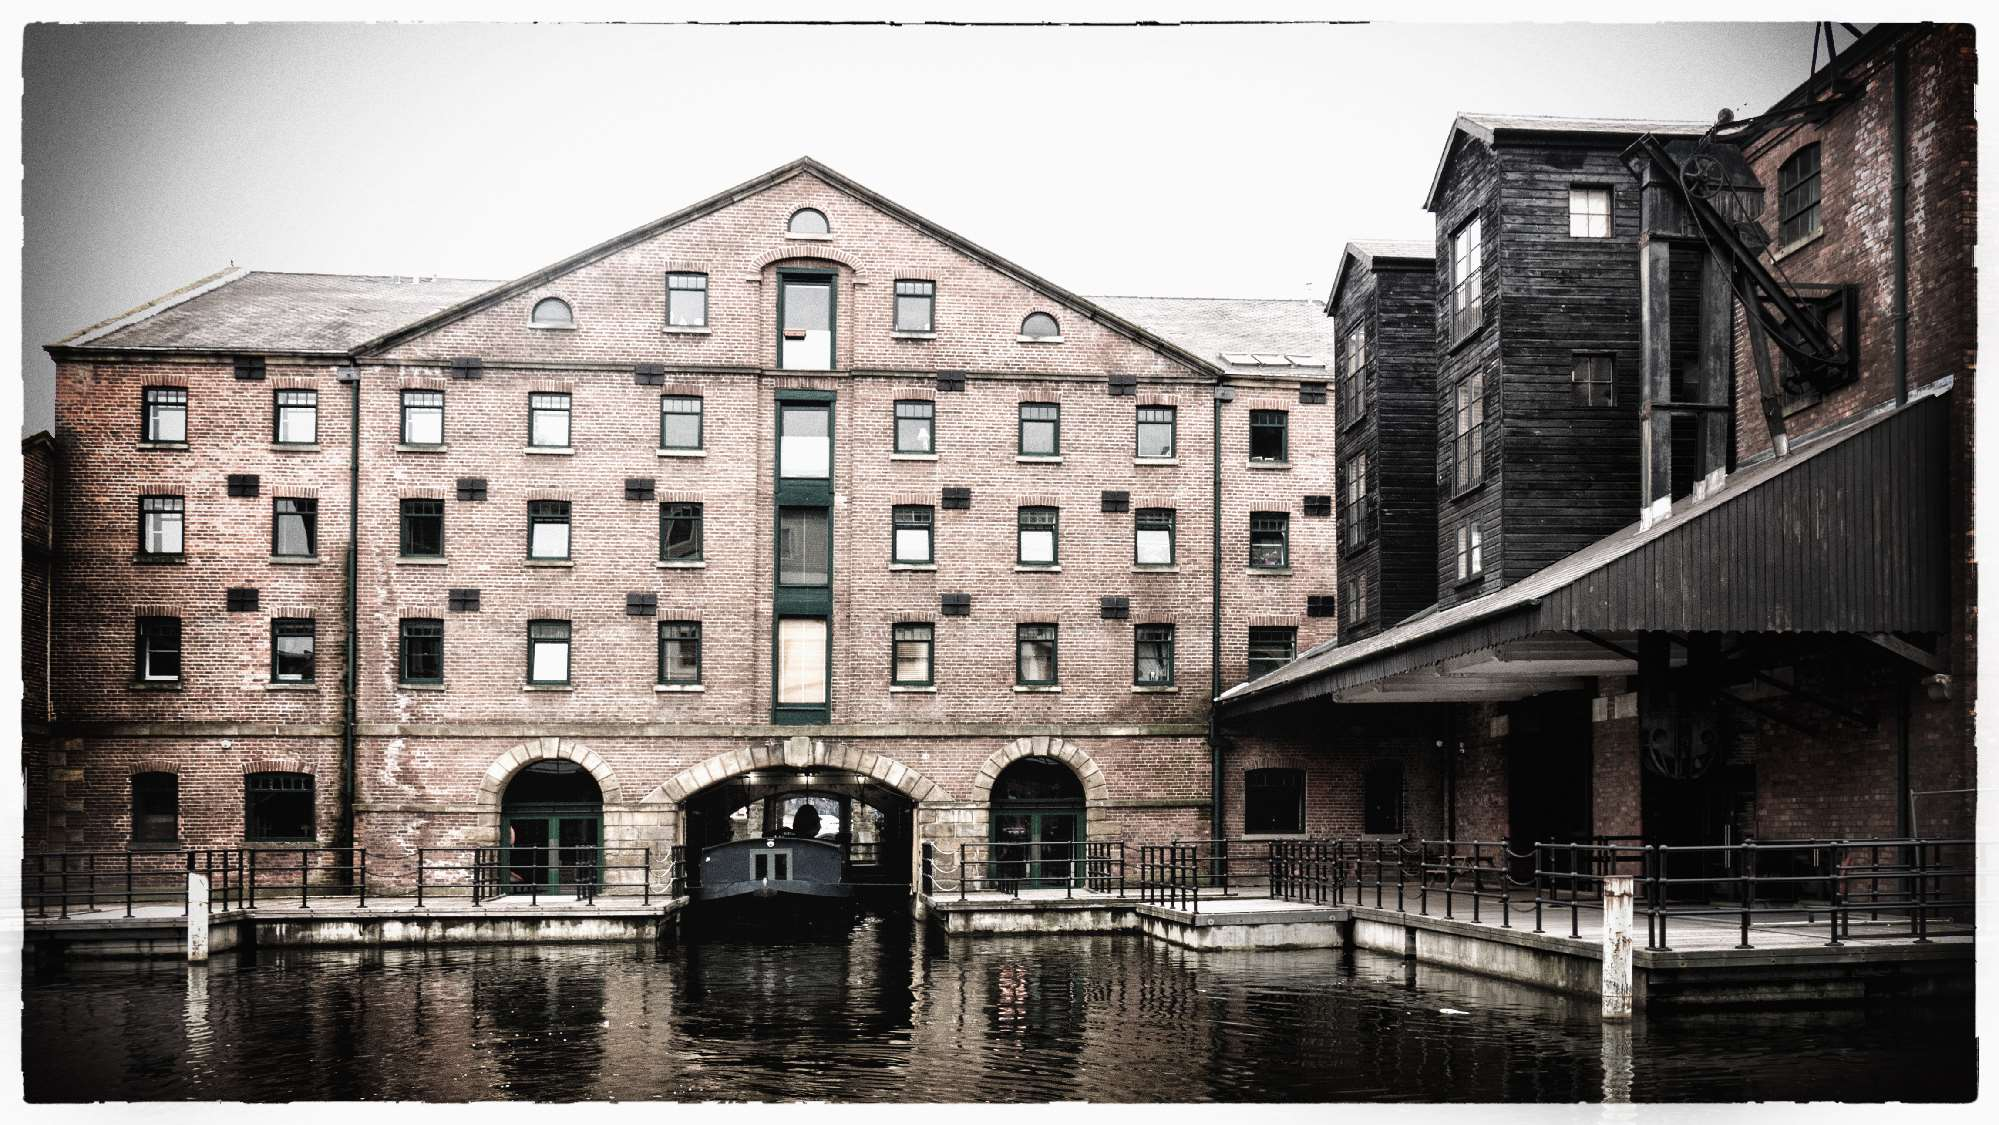 Straddle Warehouse and Grain Warehouse Victoria Quays Sheffield NB Areandare